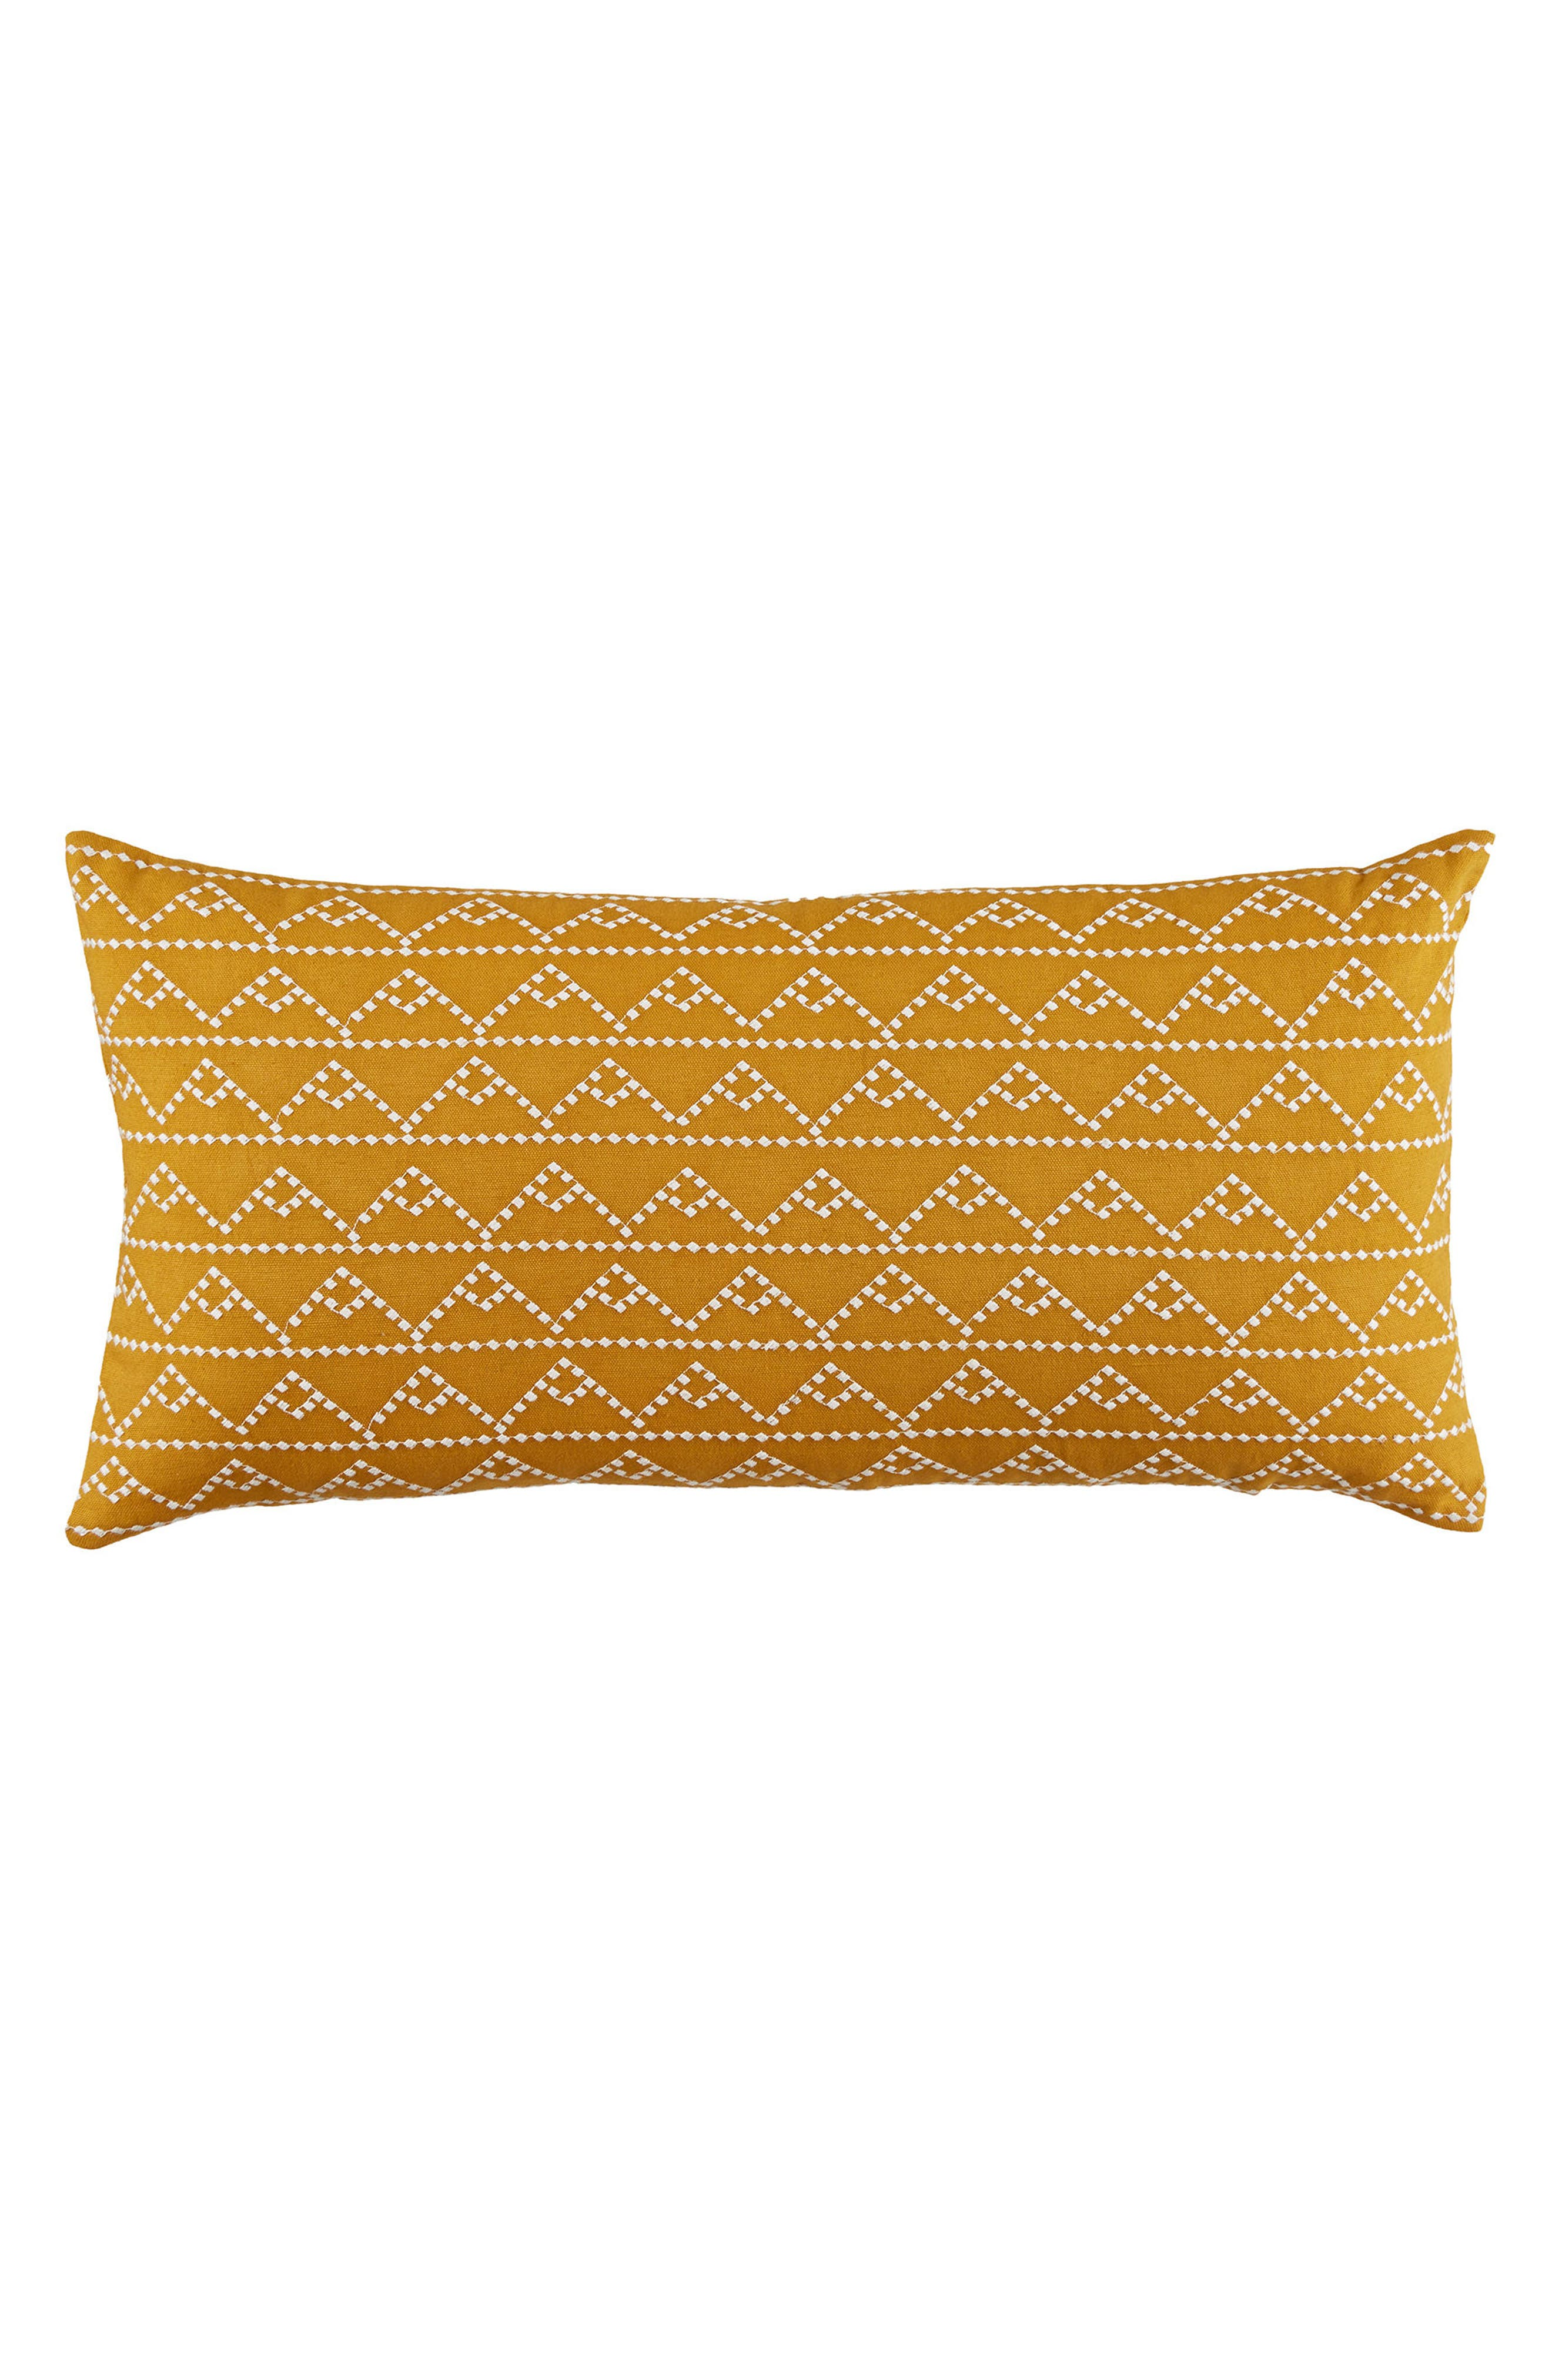 Modern Pyramid Accent Pillow,                         Main,                         color, 710